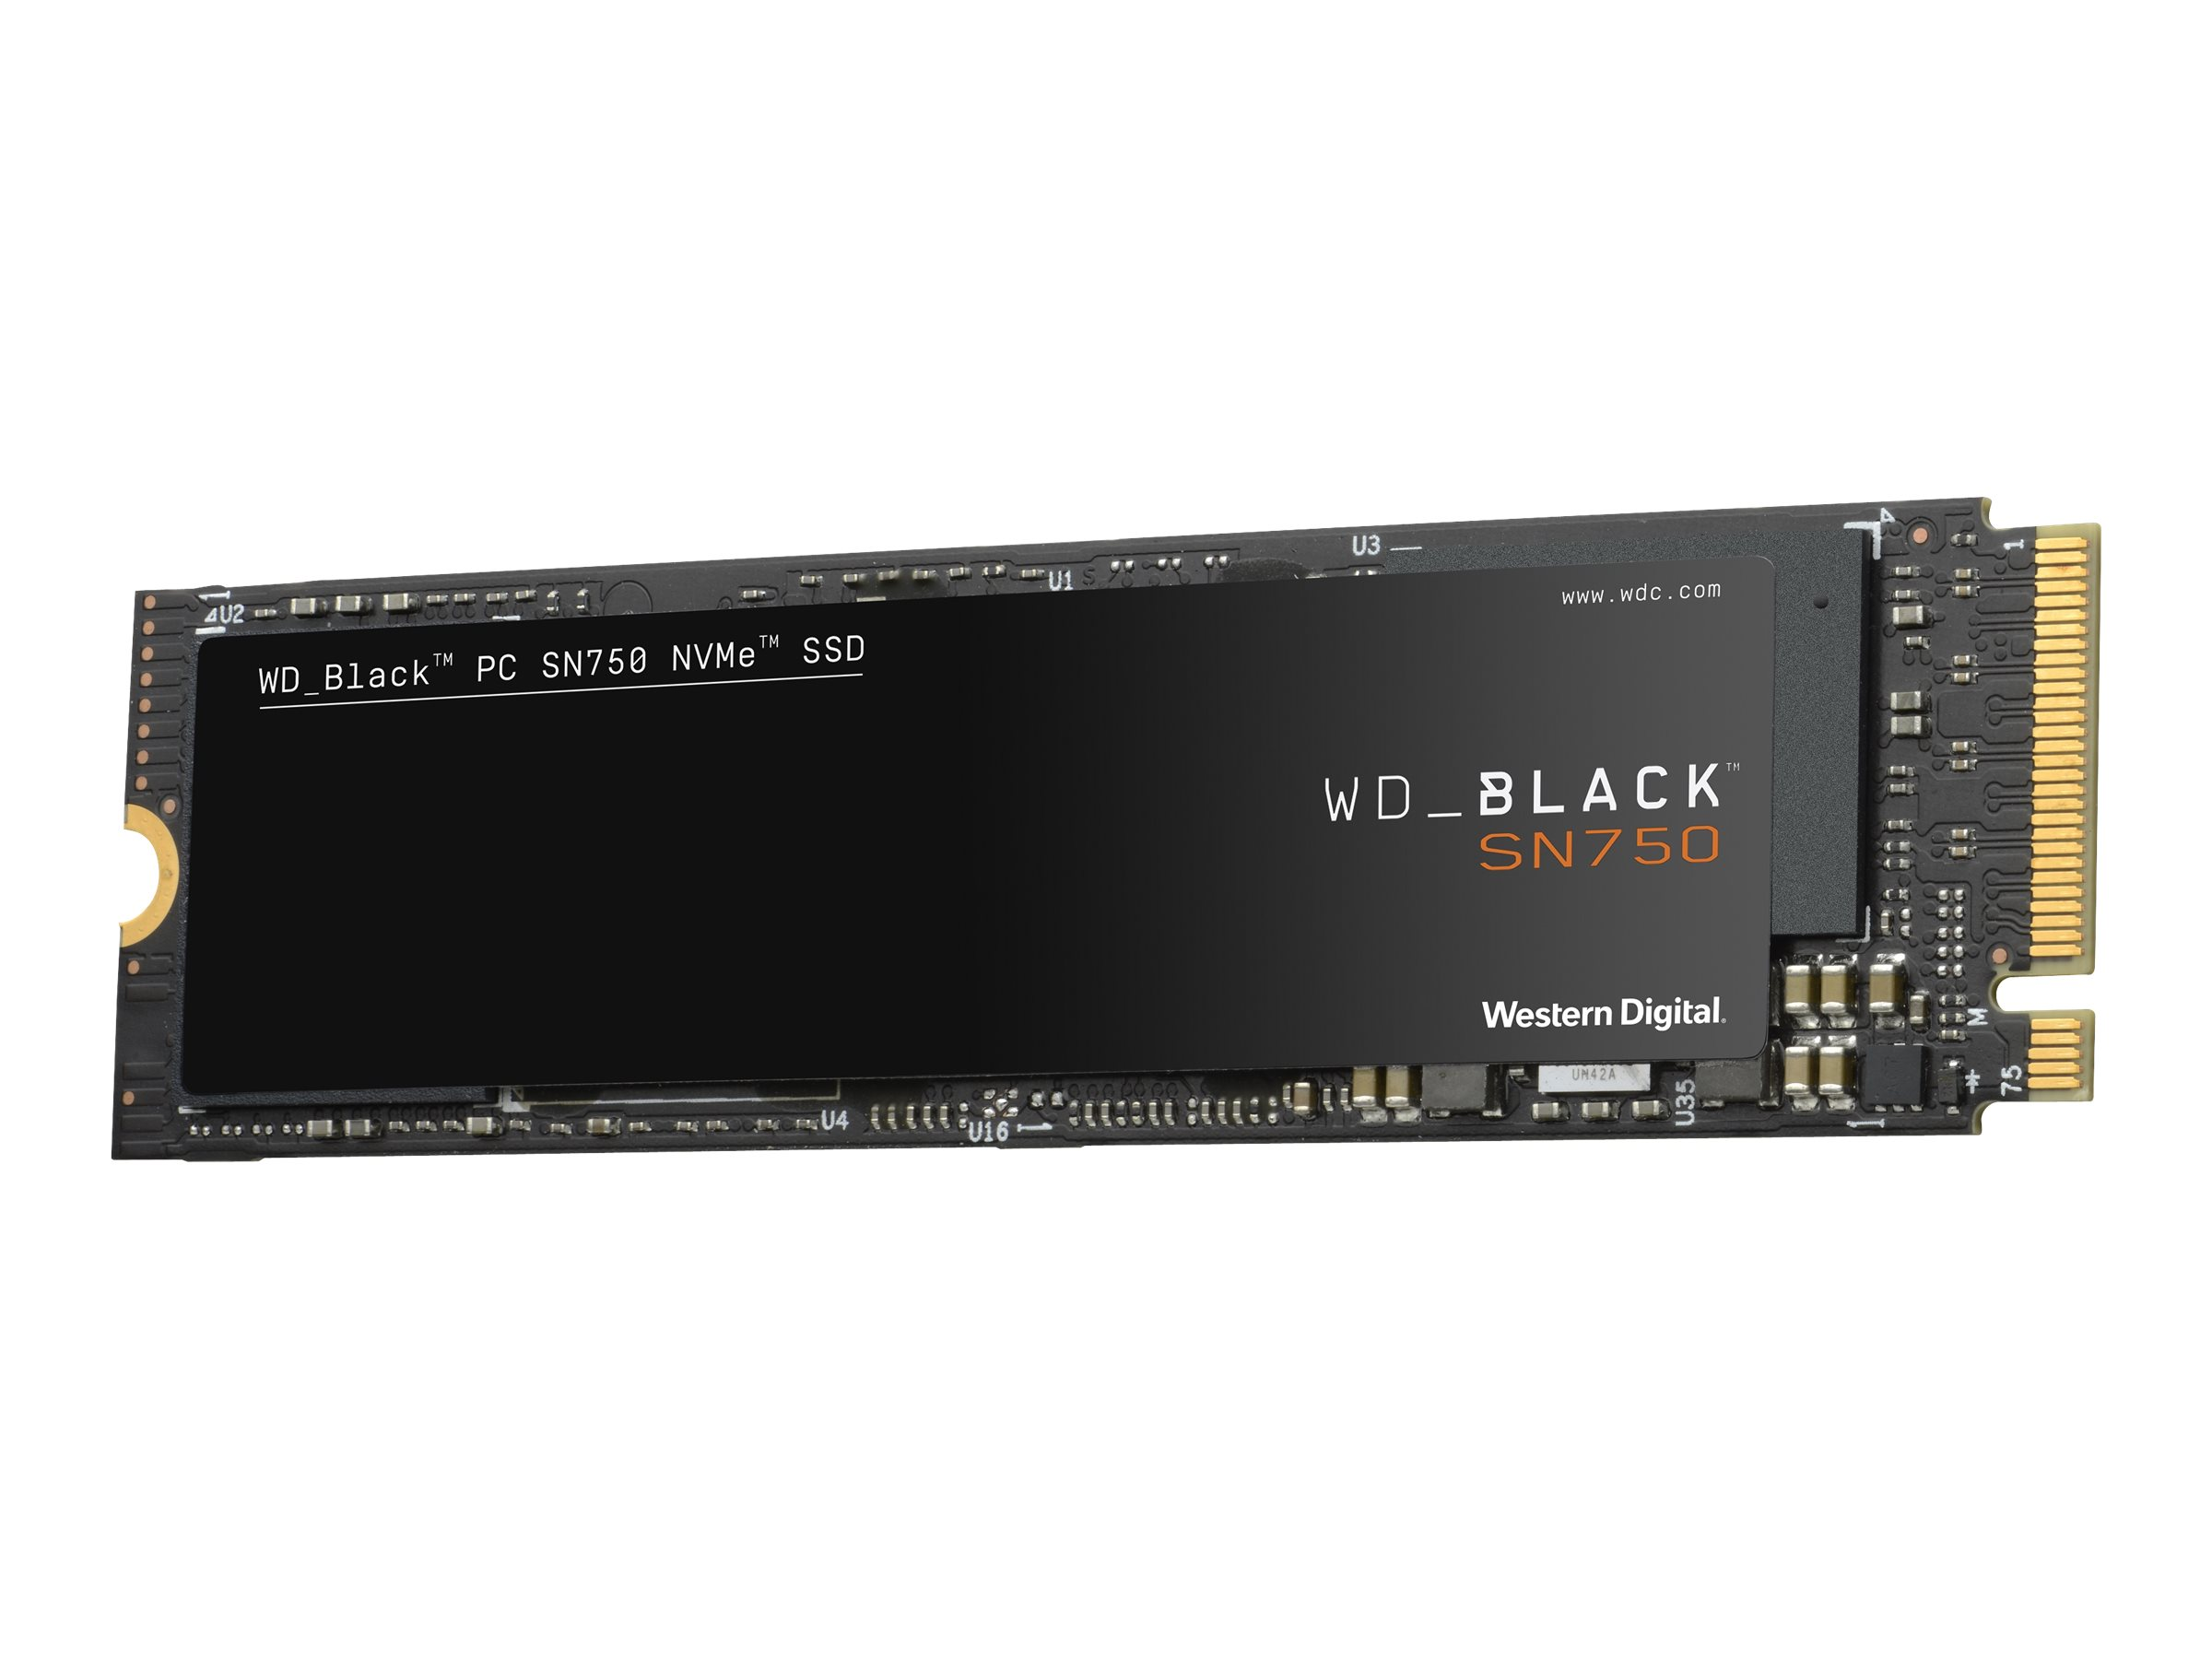 WD Black SN750 NVMe SSD WDBRPG2500ANC - Solid-State-Disk - 250 GB - intern - M.2 2280 - PCI Express 3.0 x4 (NVMe)